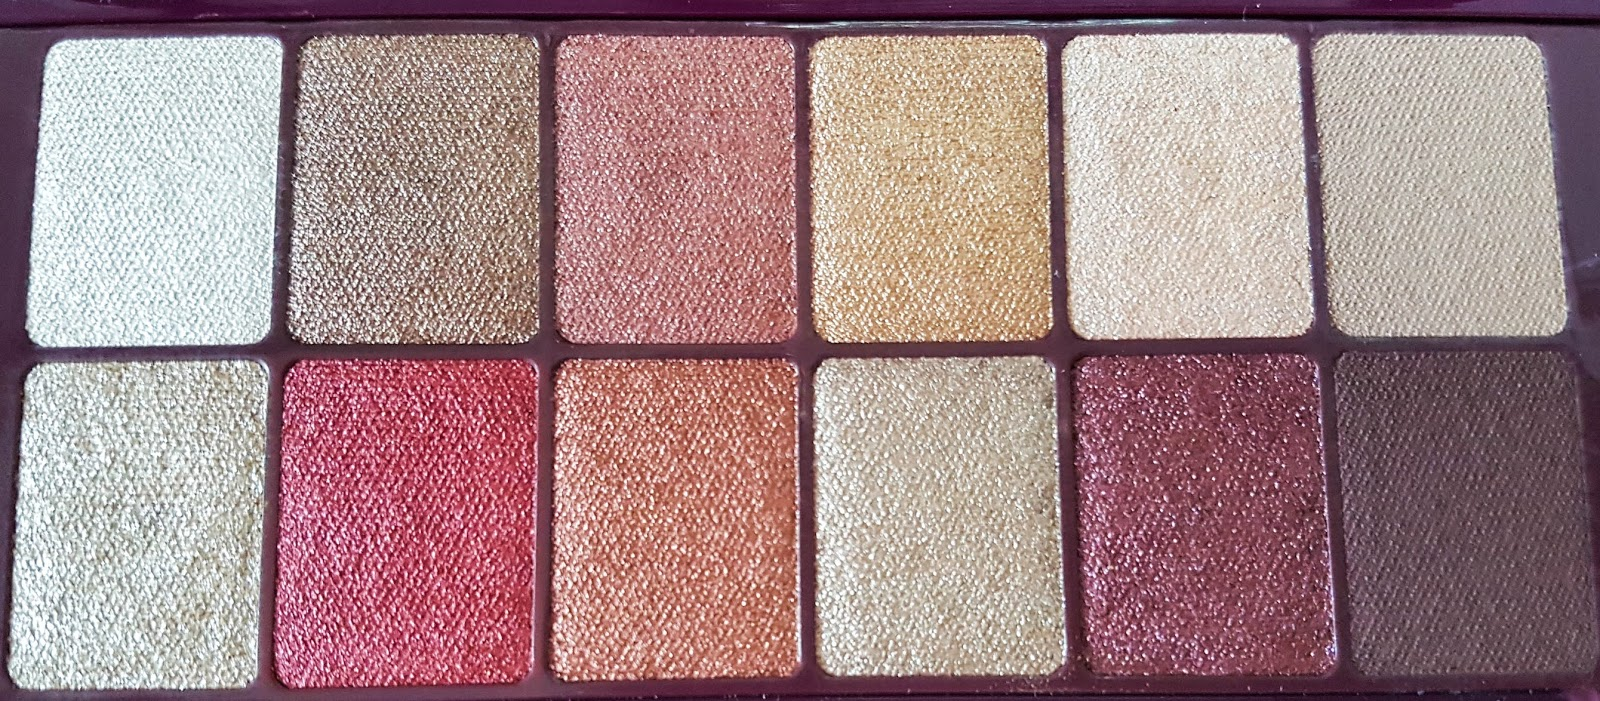 avis-the-burgundy-bar-maybelline-swatch-makeup-mama-syca-beaute